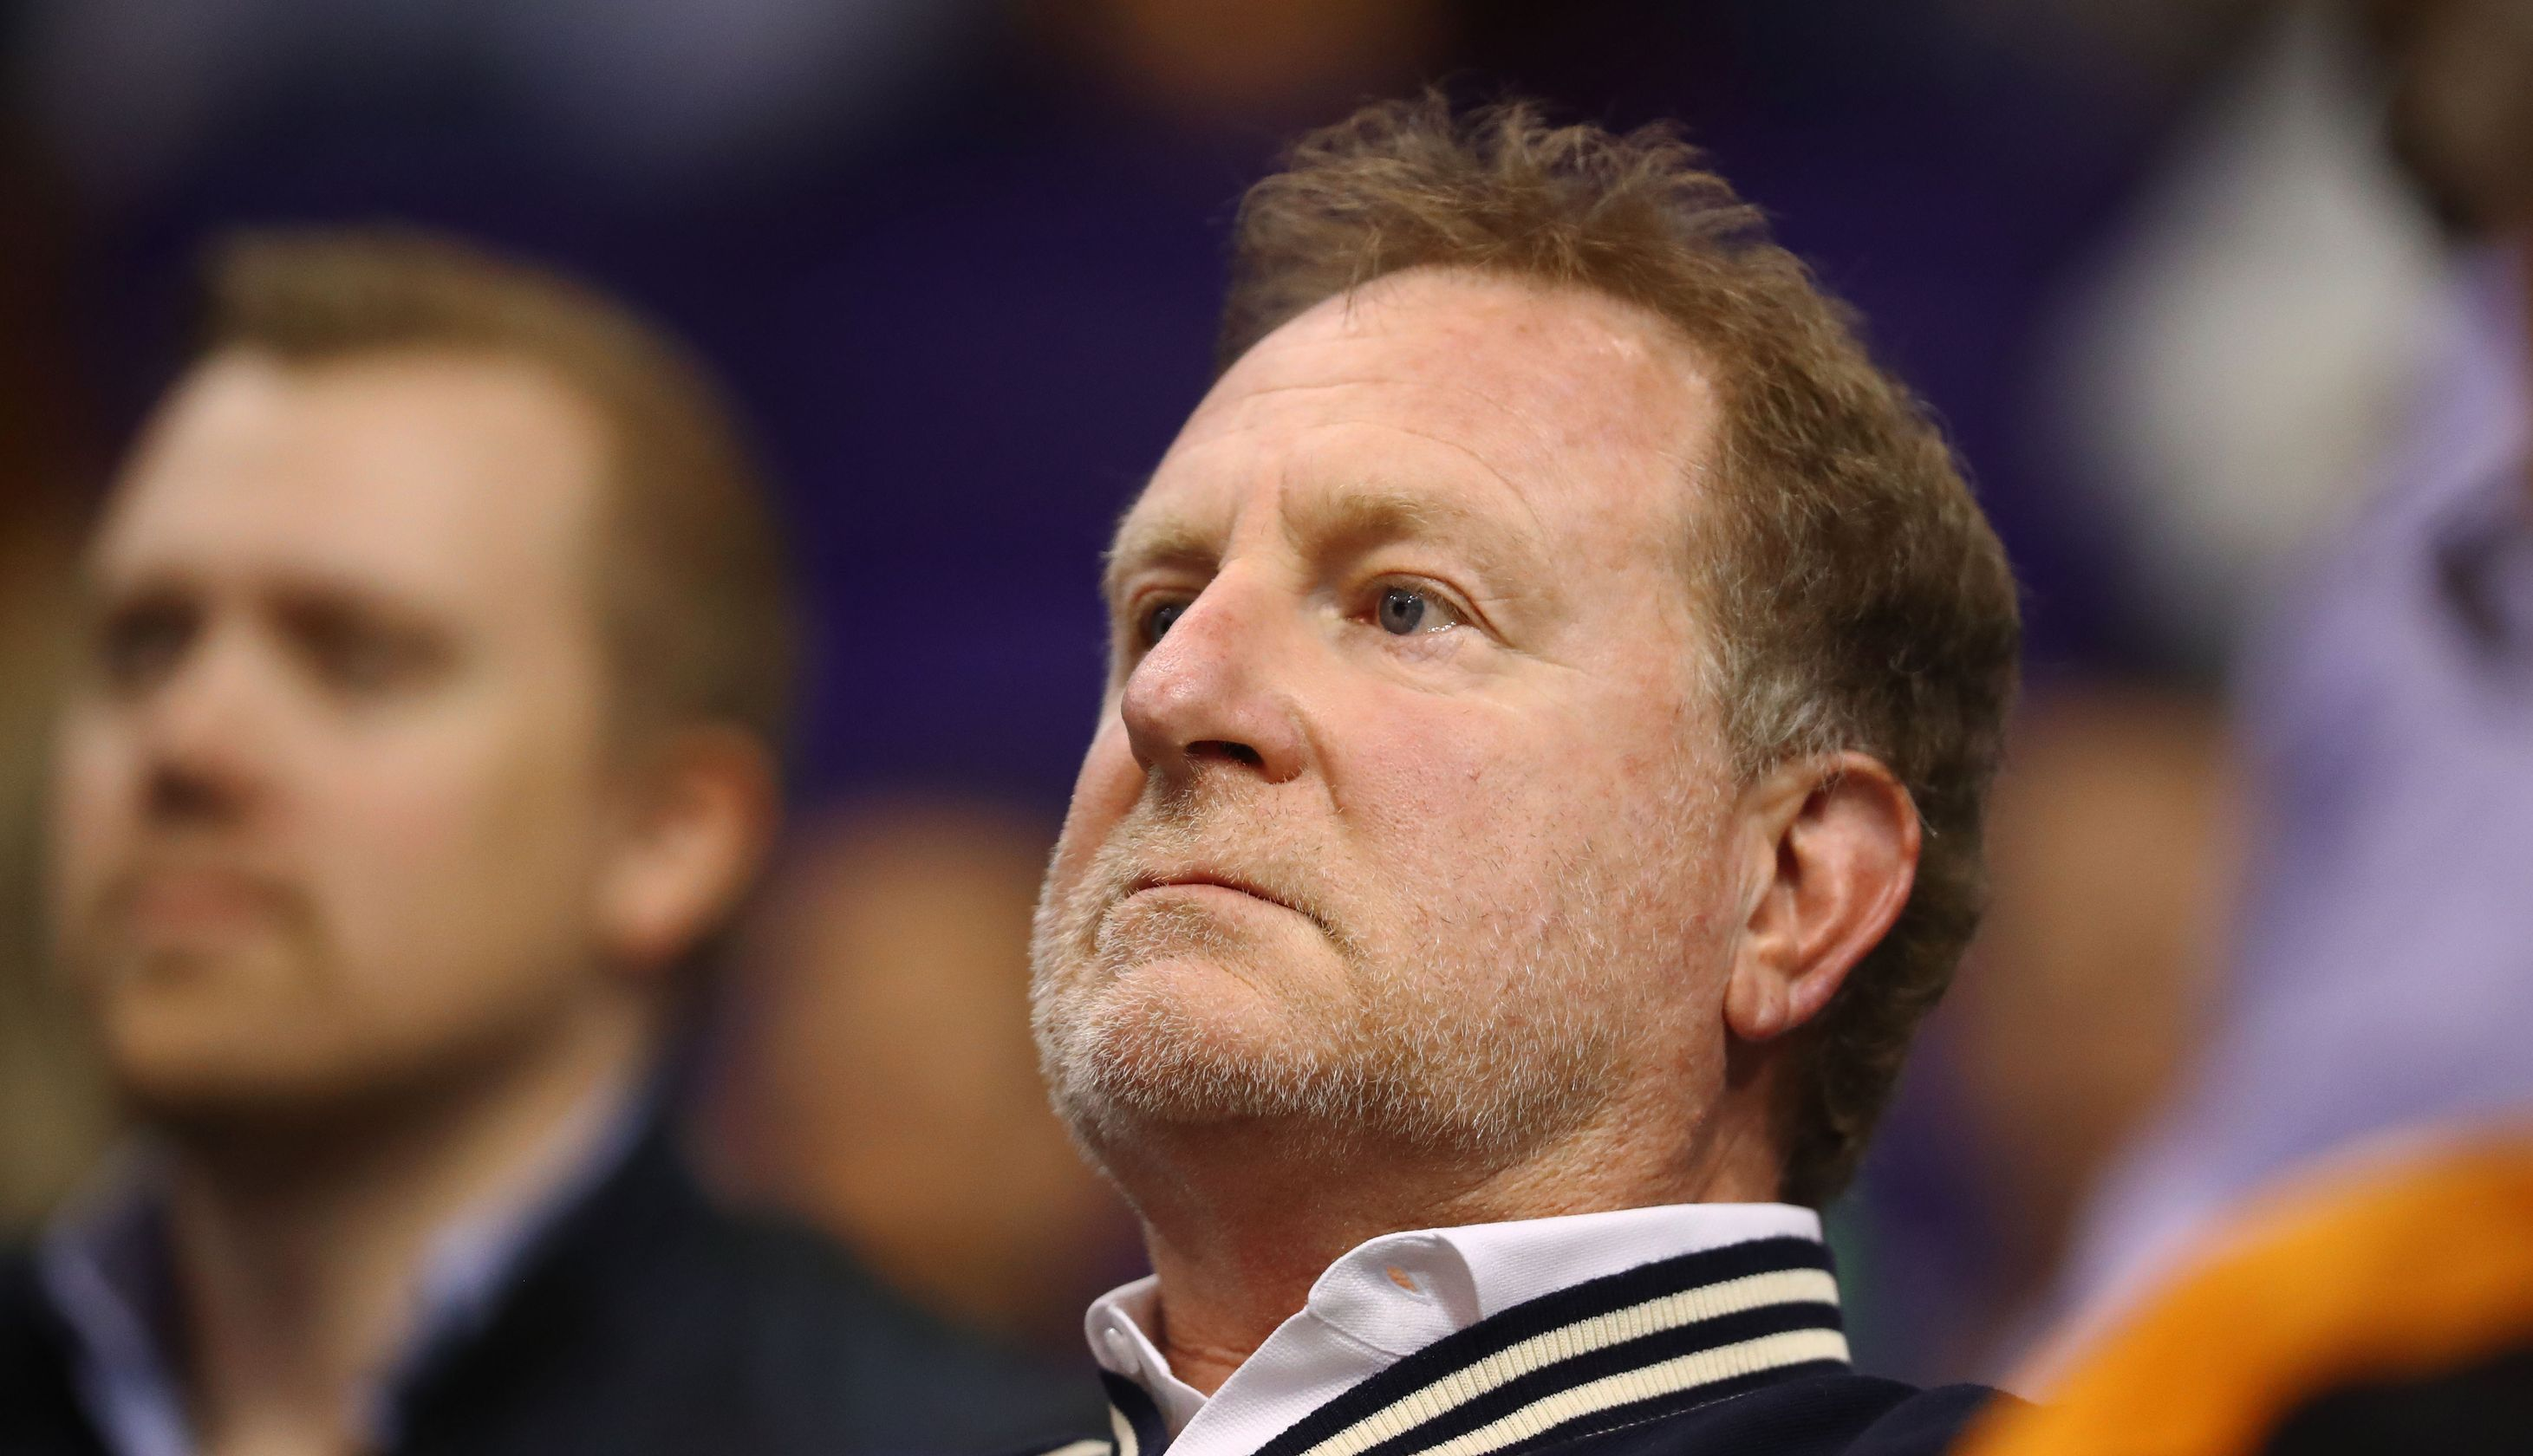 Phoenix Suns Owner Threatens to Move Team to Las Vegas, Seattle